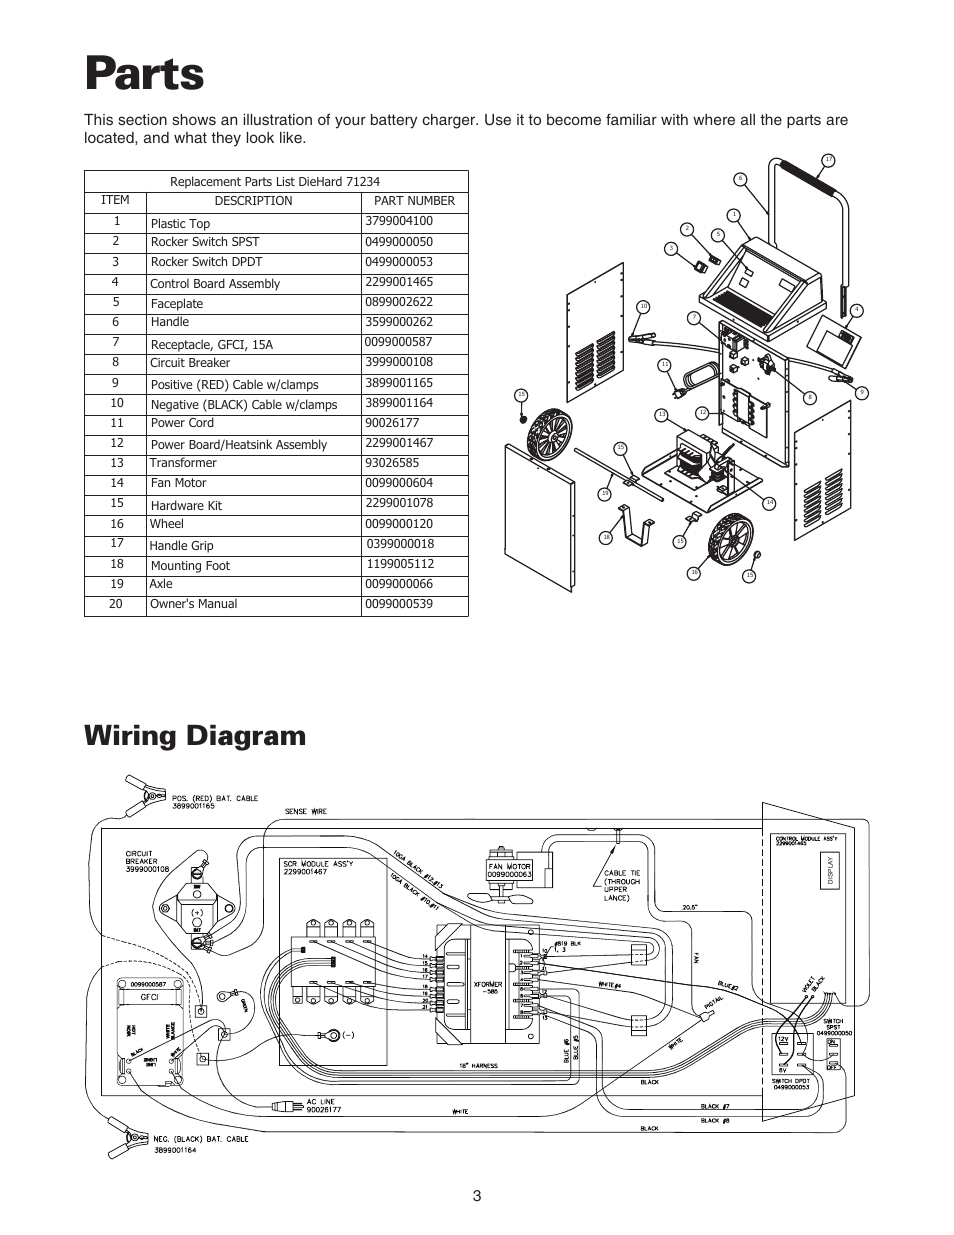 hight resolution of schumacher battery charger wiring diagram 200